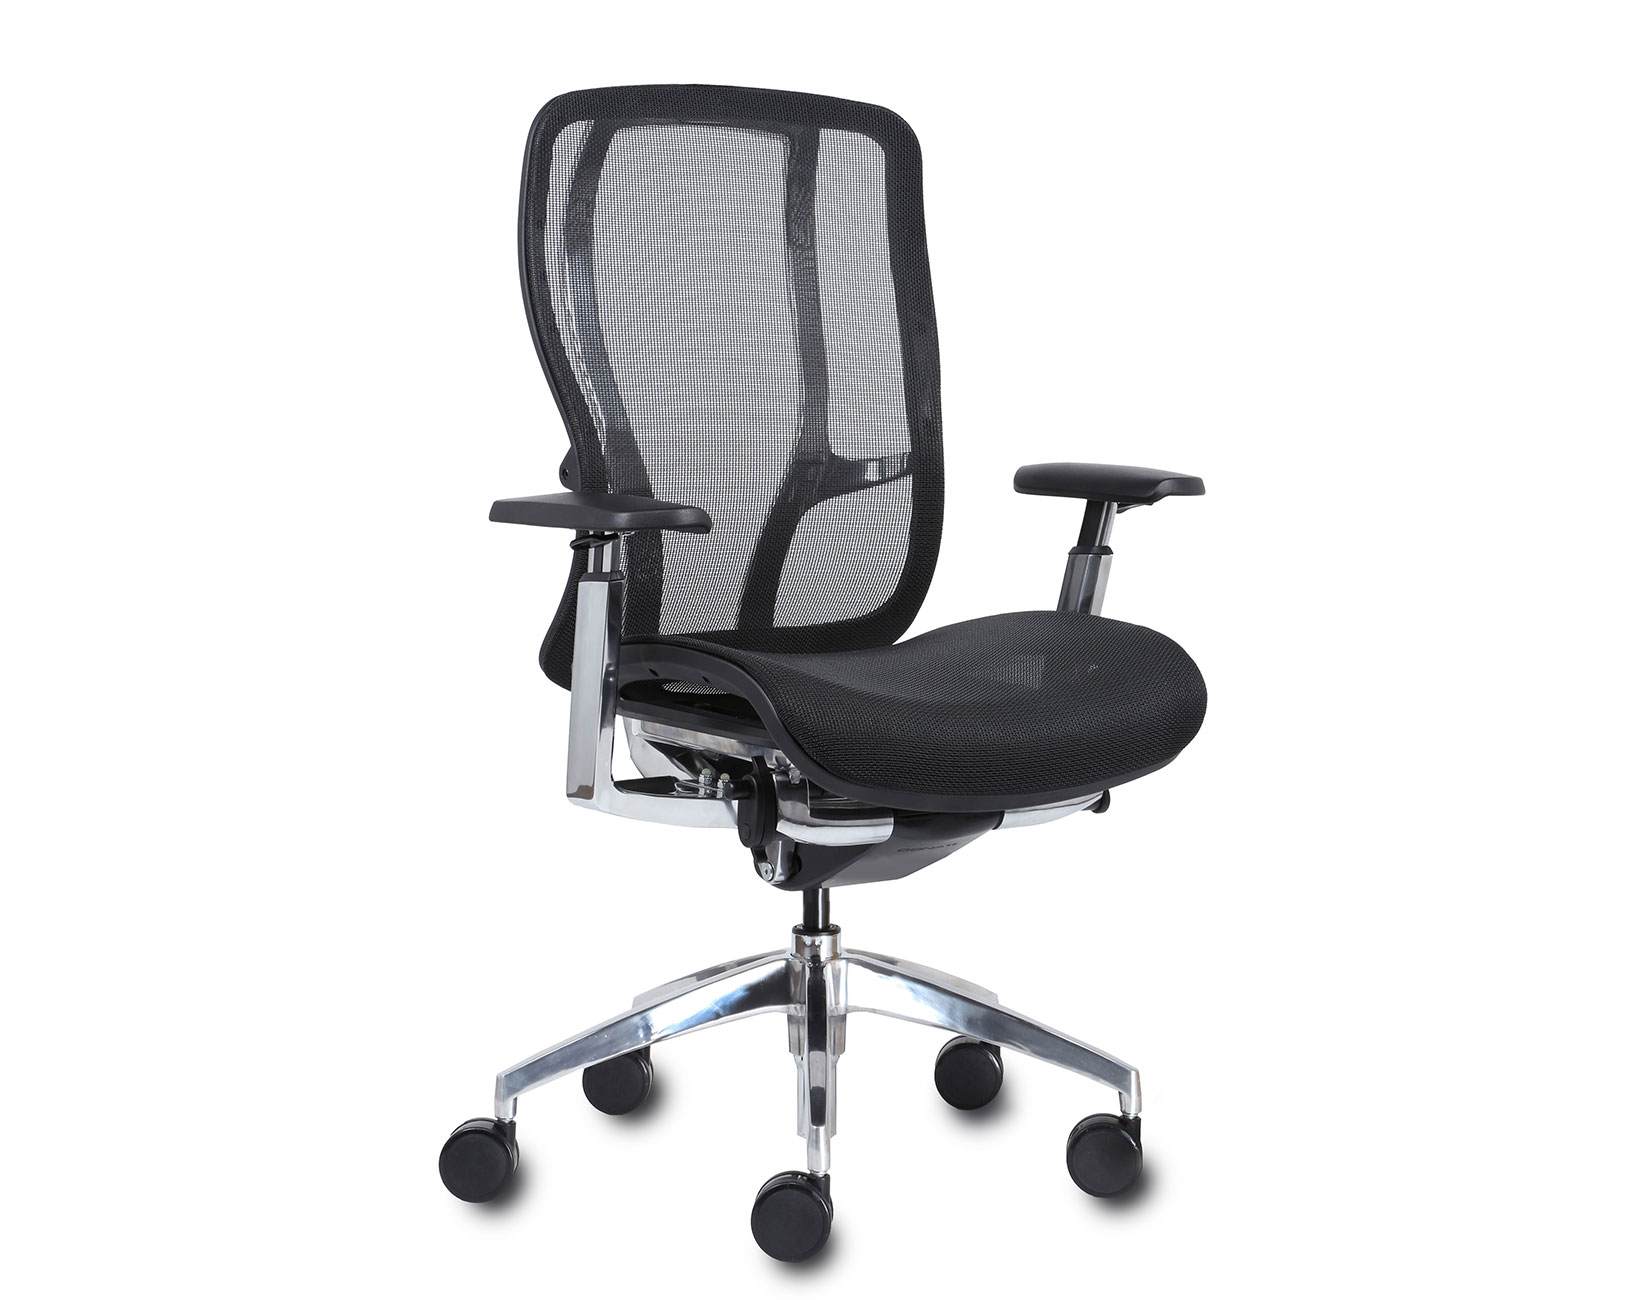 mesh back chairs for office antique high 9to5 seating vesta 3060 task chair | furniture ethosource